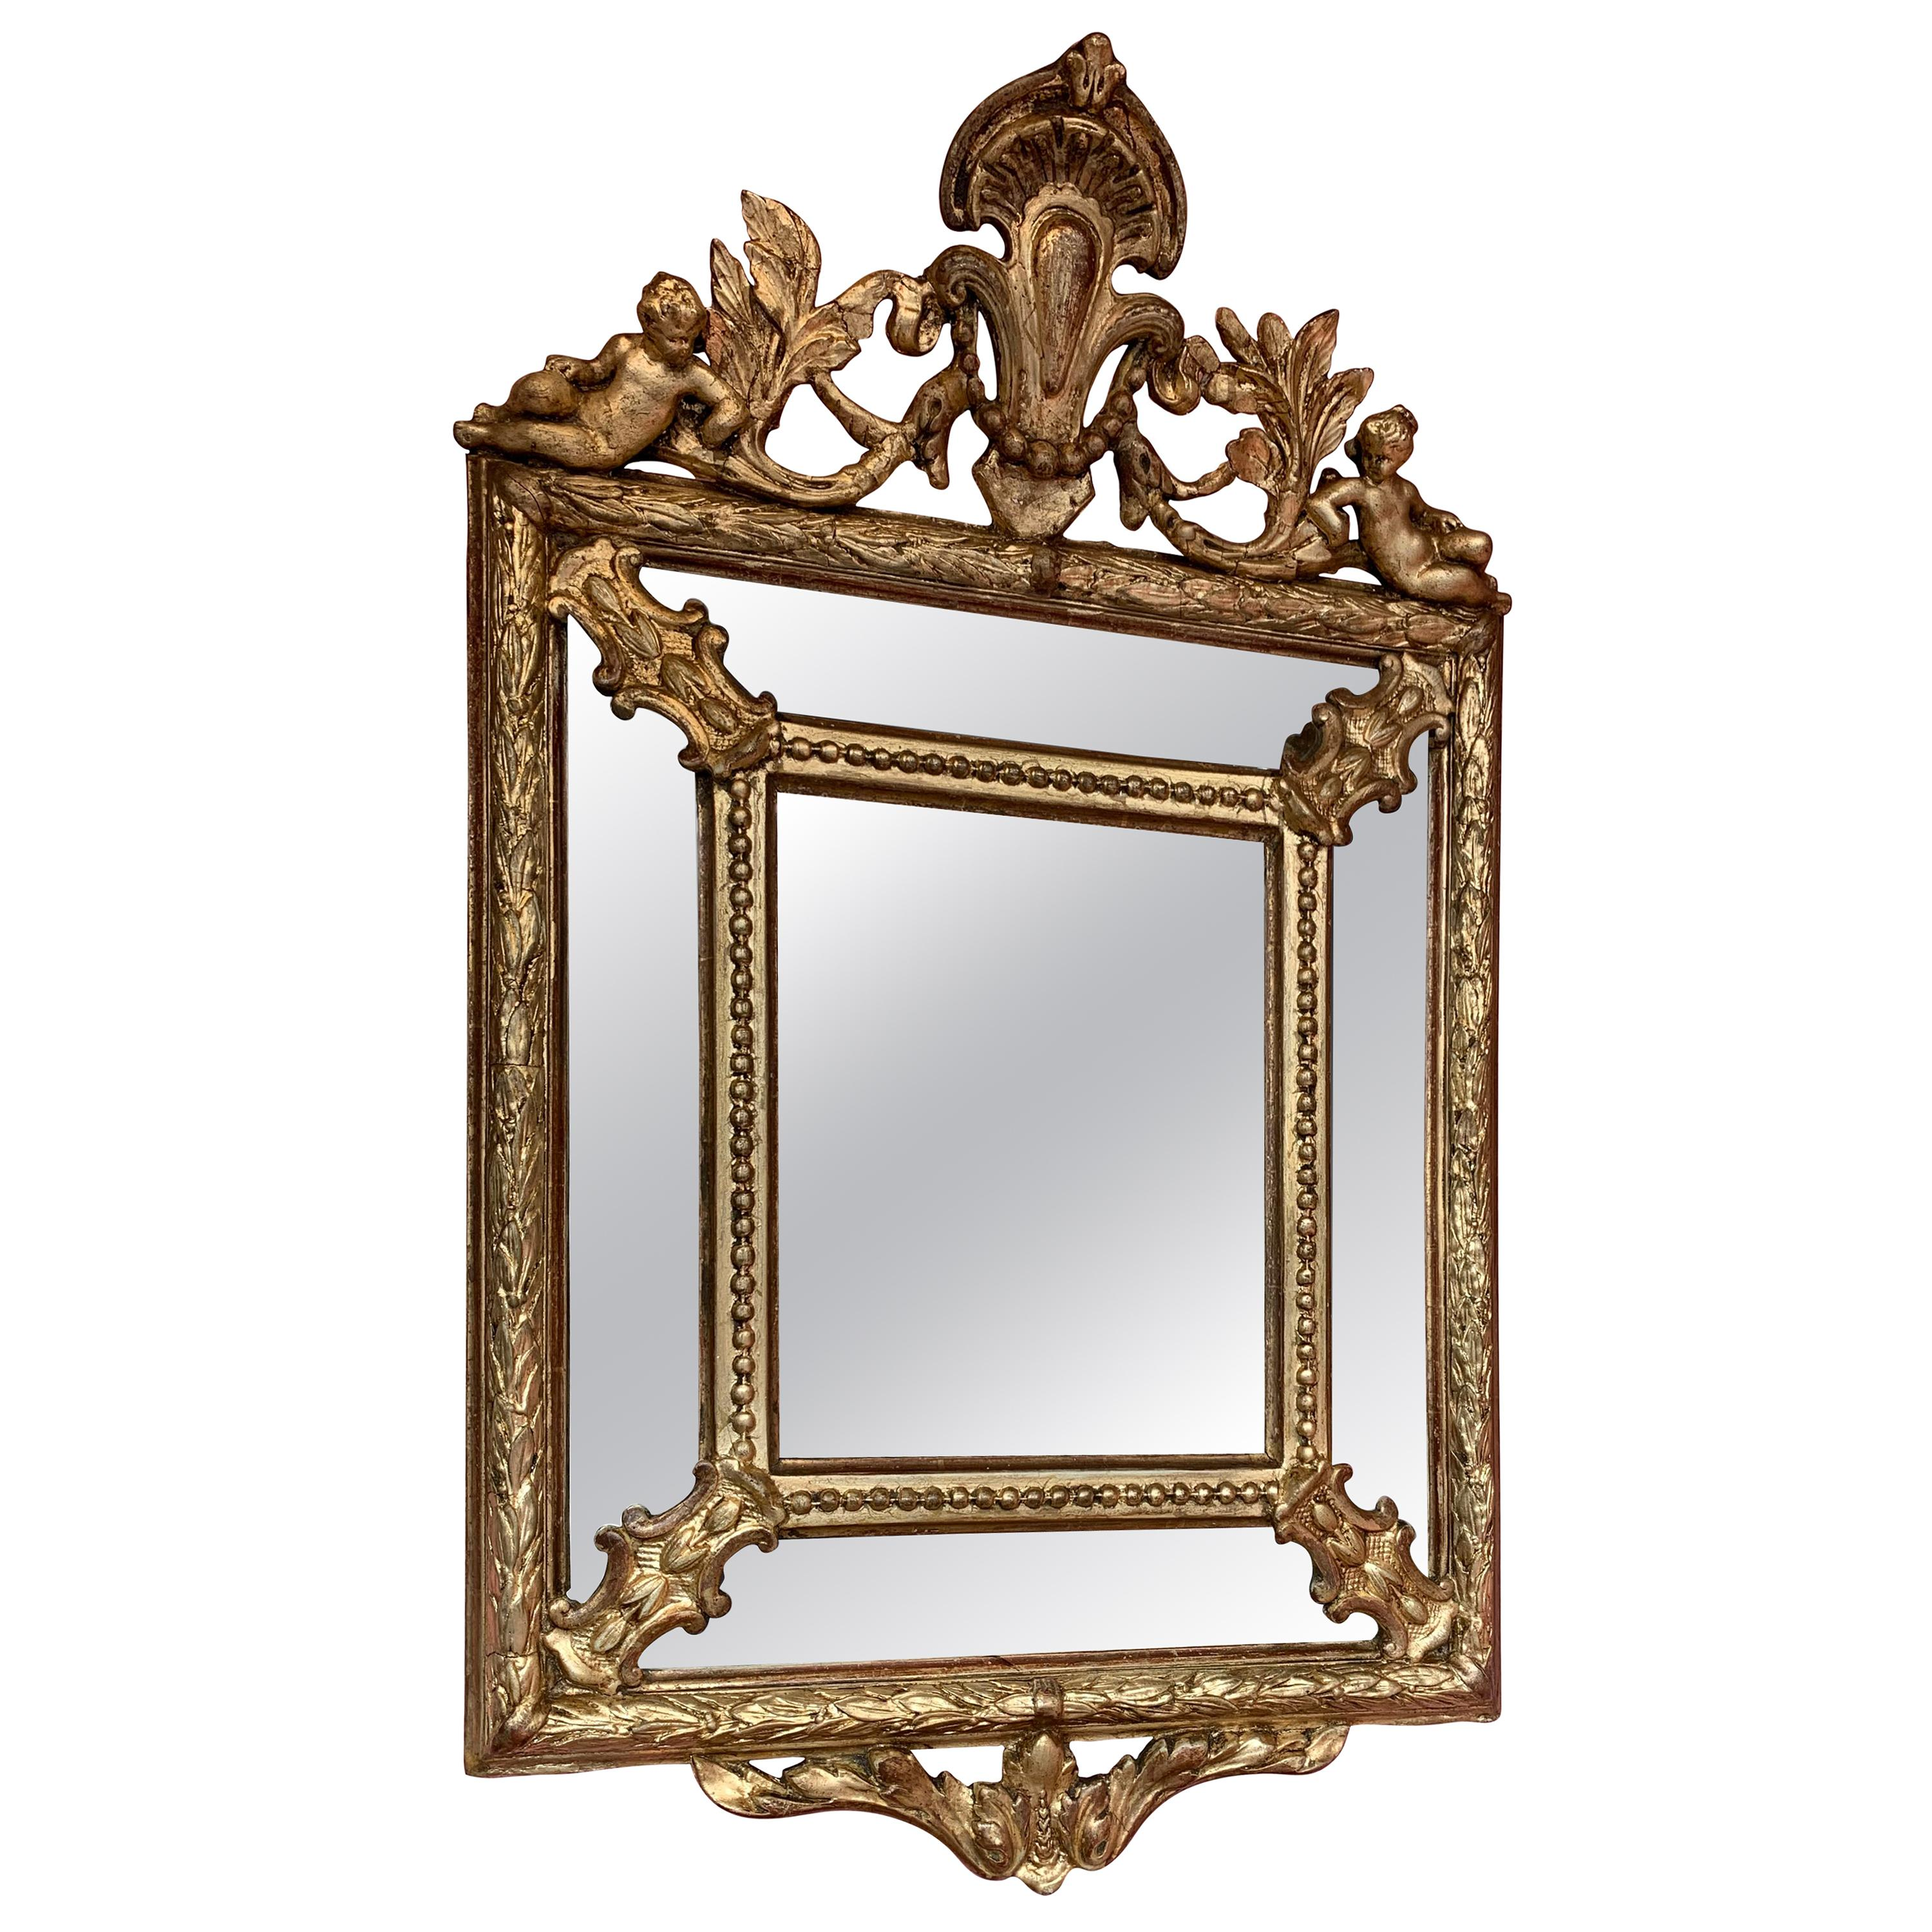 Antique French Small Giltwood Mirror with Cherubs